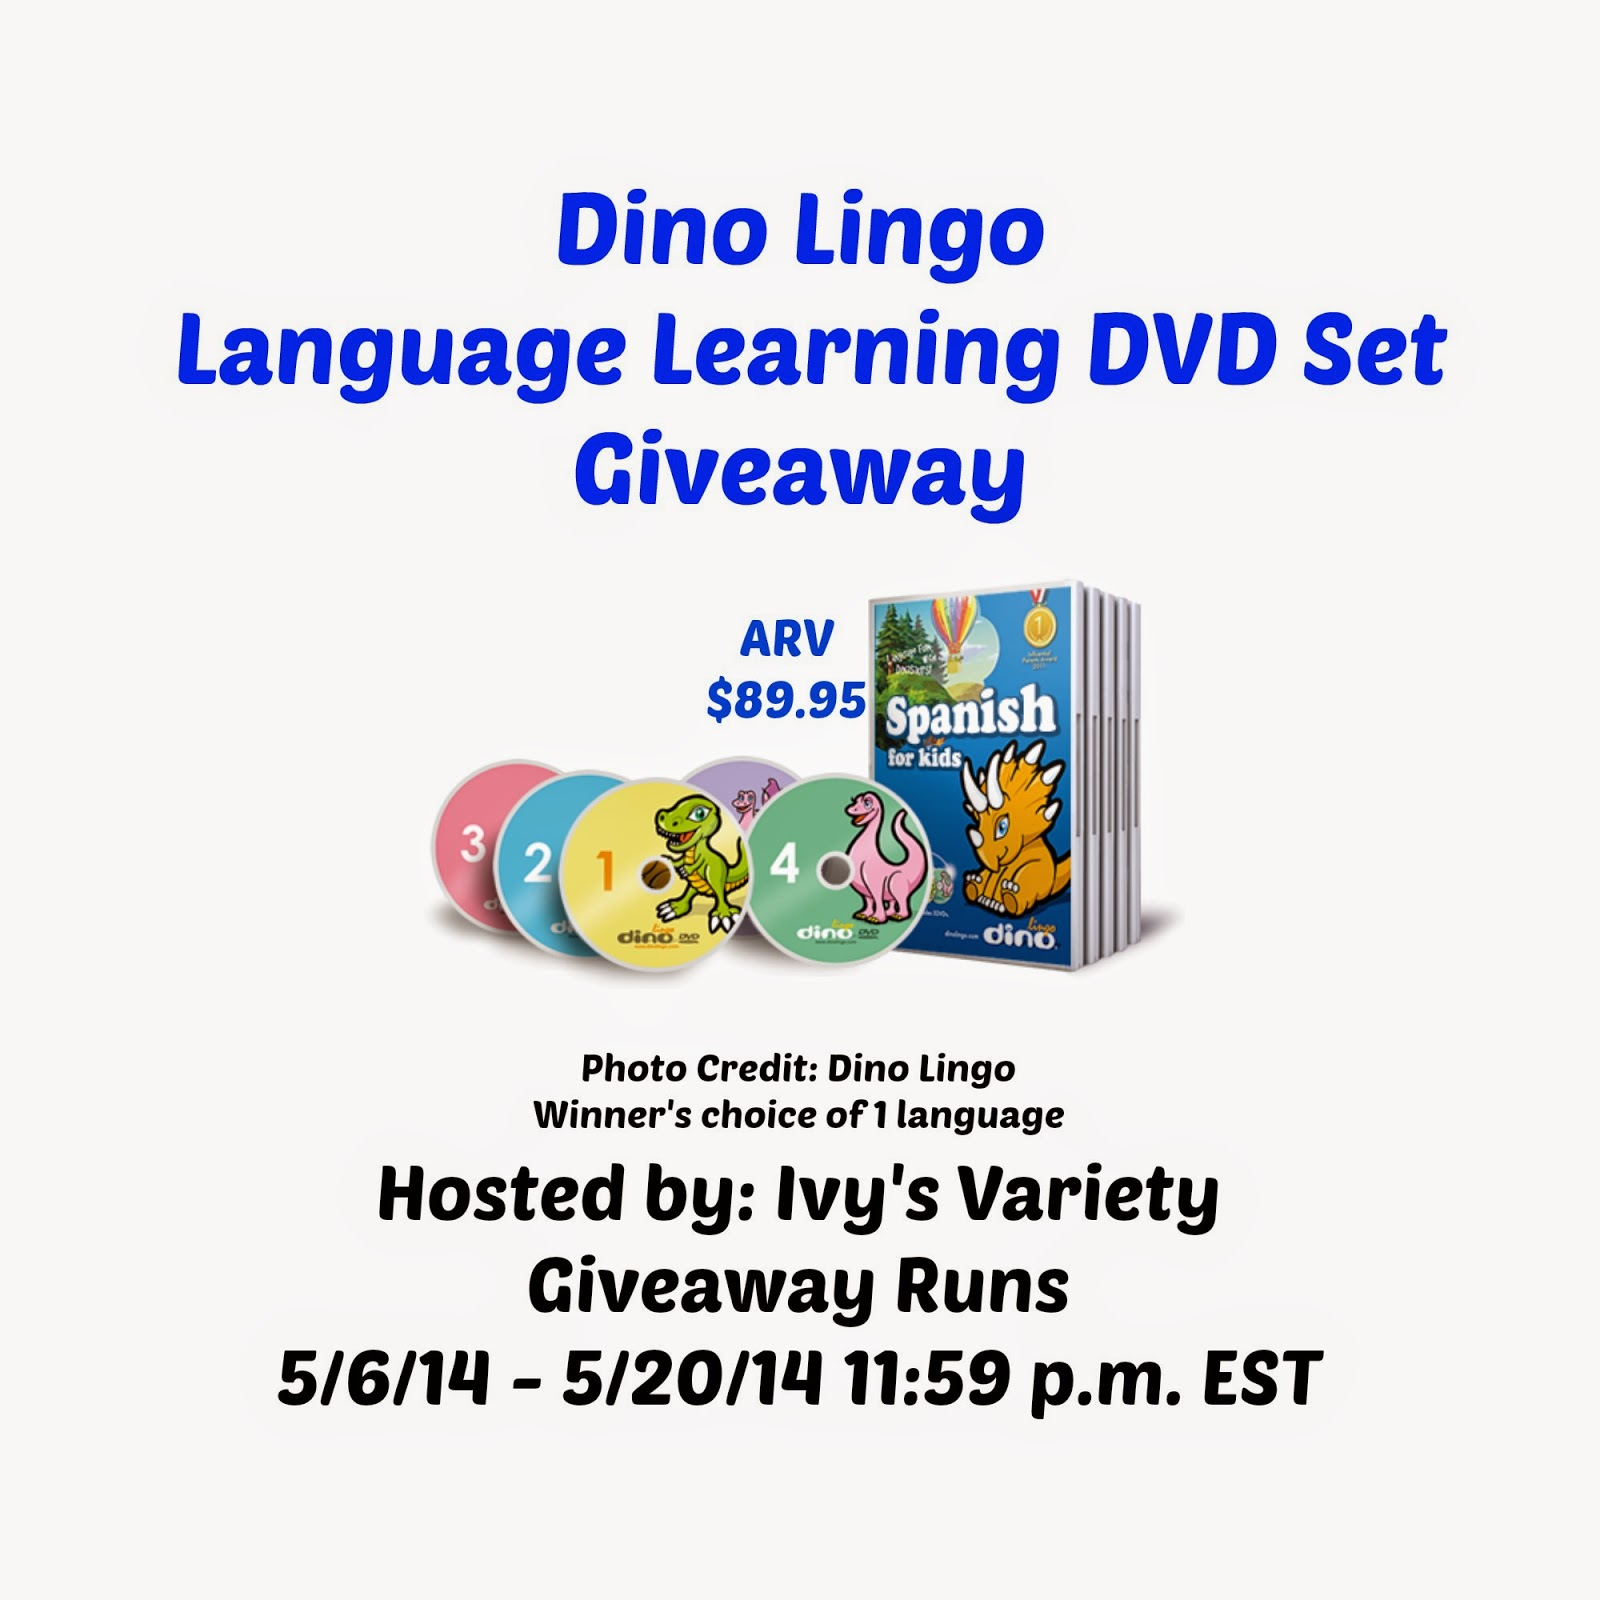 Enter the Dino Lingo Language Learning DVD Set Giveaway. Ends 5/20.